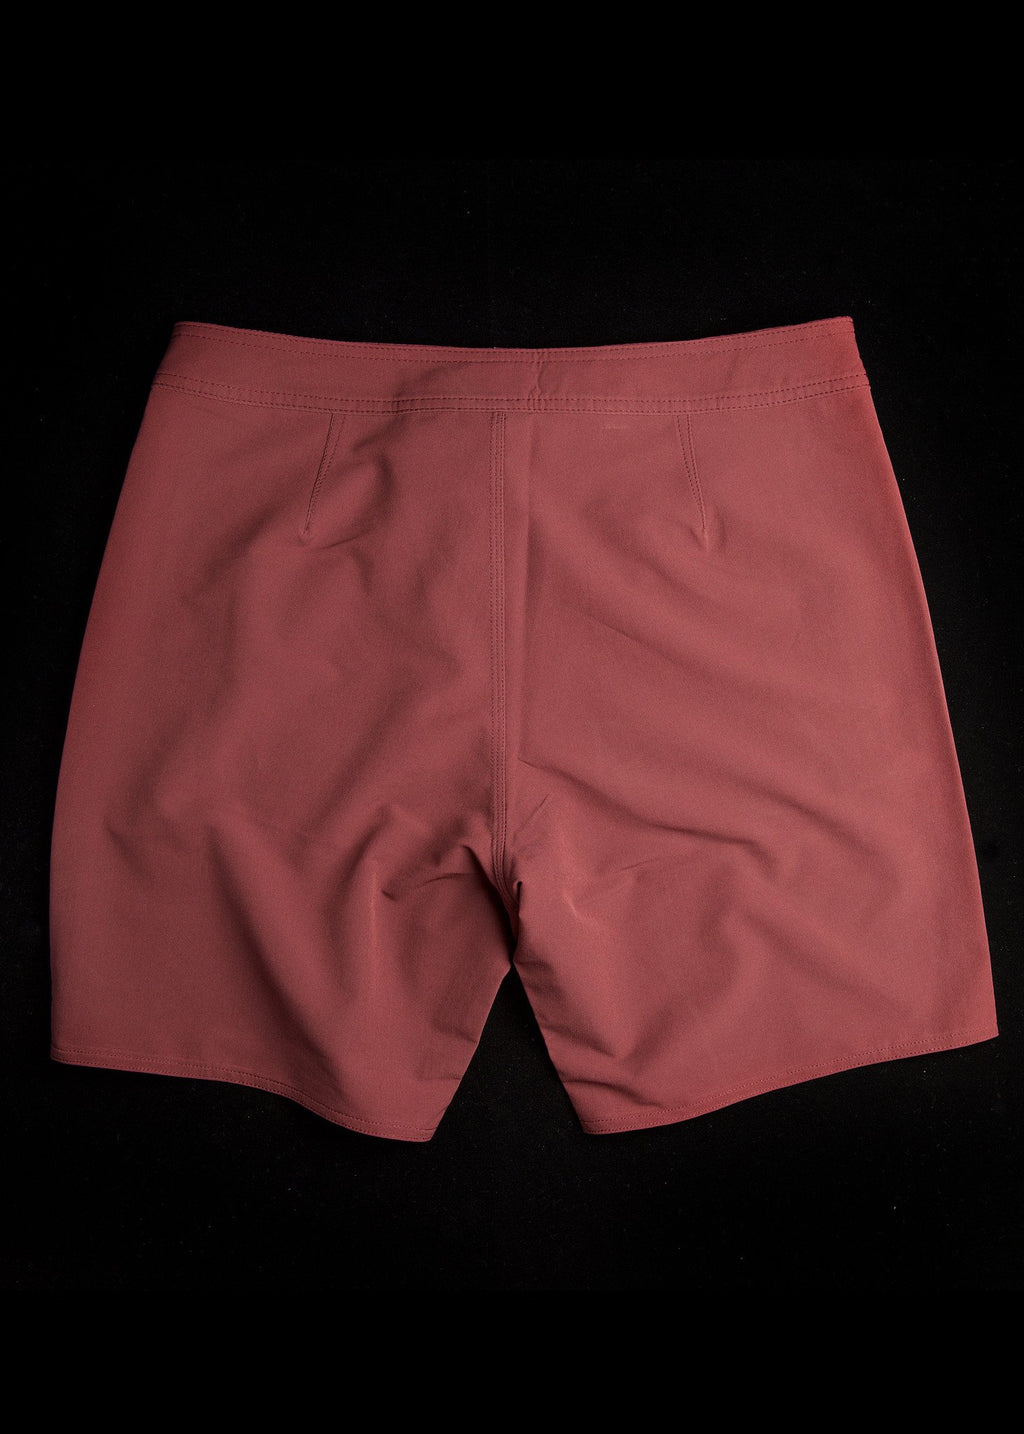 burgundy boardies